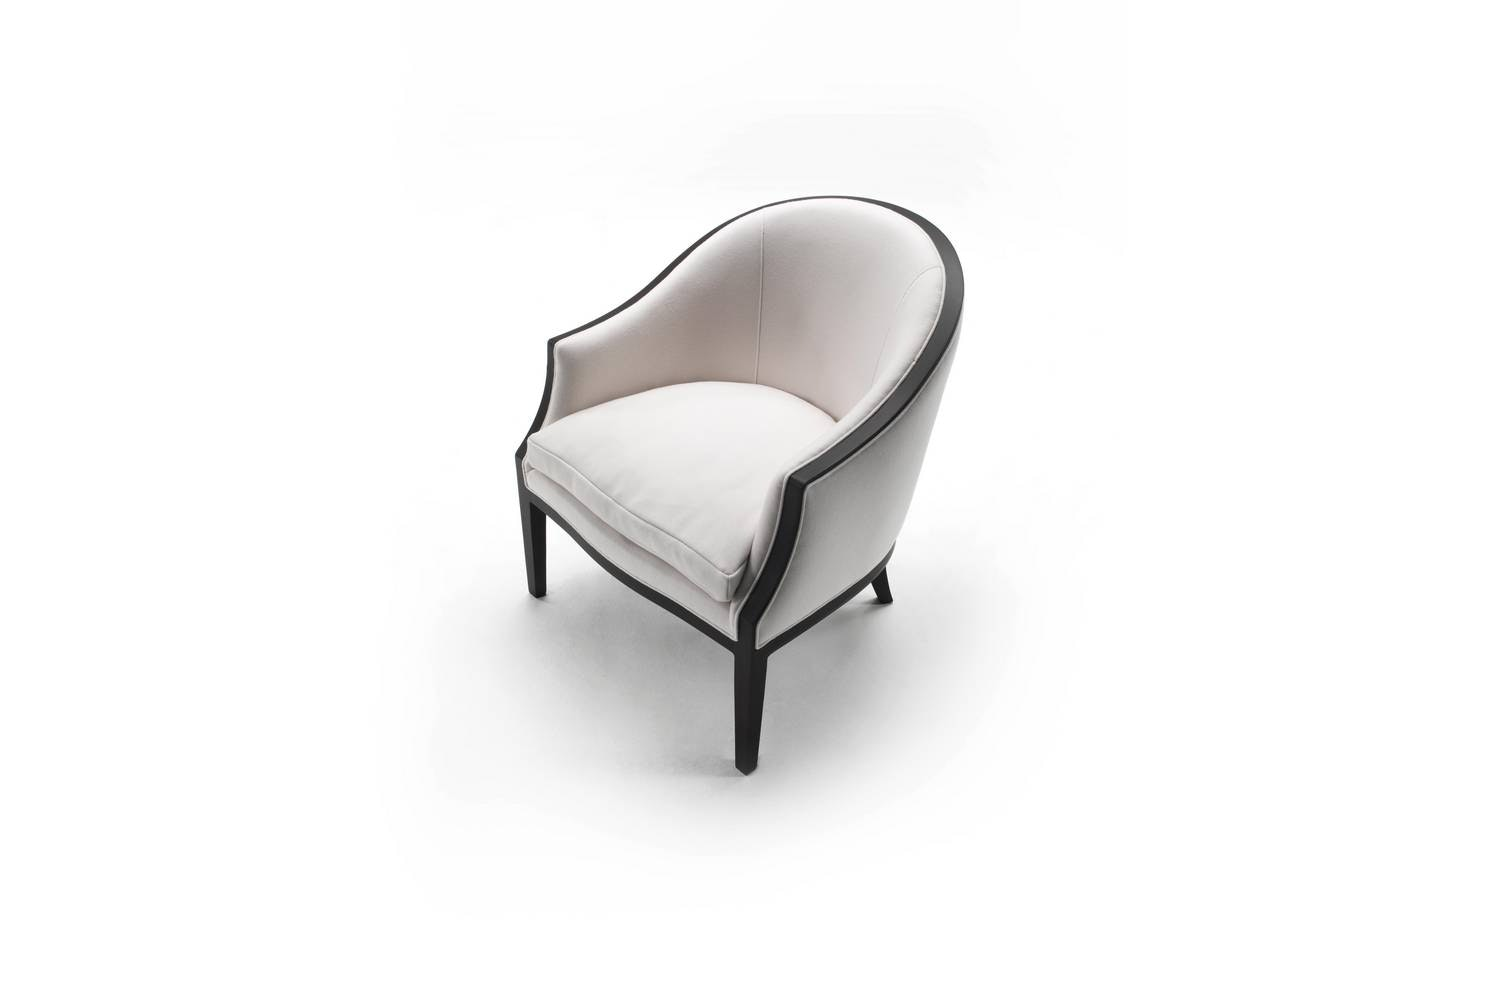 ABC Armchair by Piero Lissoni for Living Divani